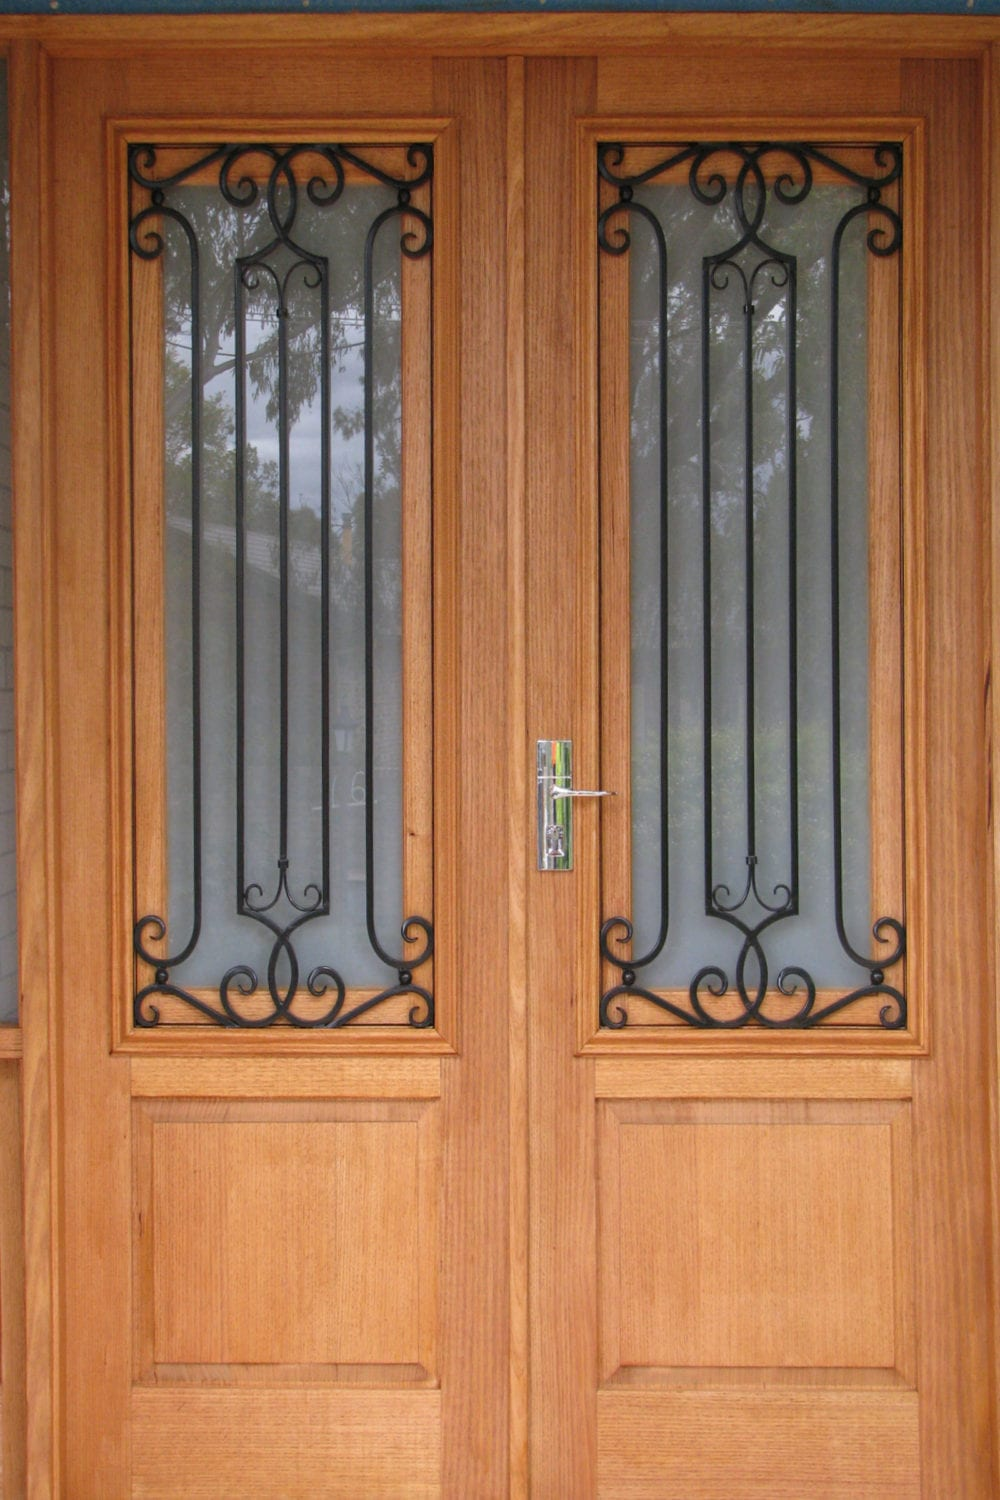 Aussie Wrought Iron and Timber Doors is a Australian owned family business based in Bayswater Victoria manufacturing designing Australiau0027s highest ... & We manufacture unique inidually designed doors for varied clients pezcame.com